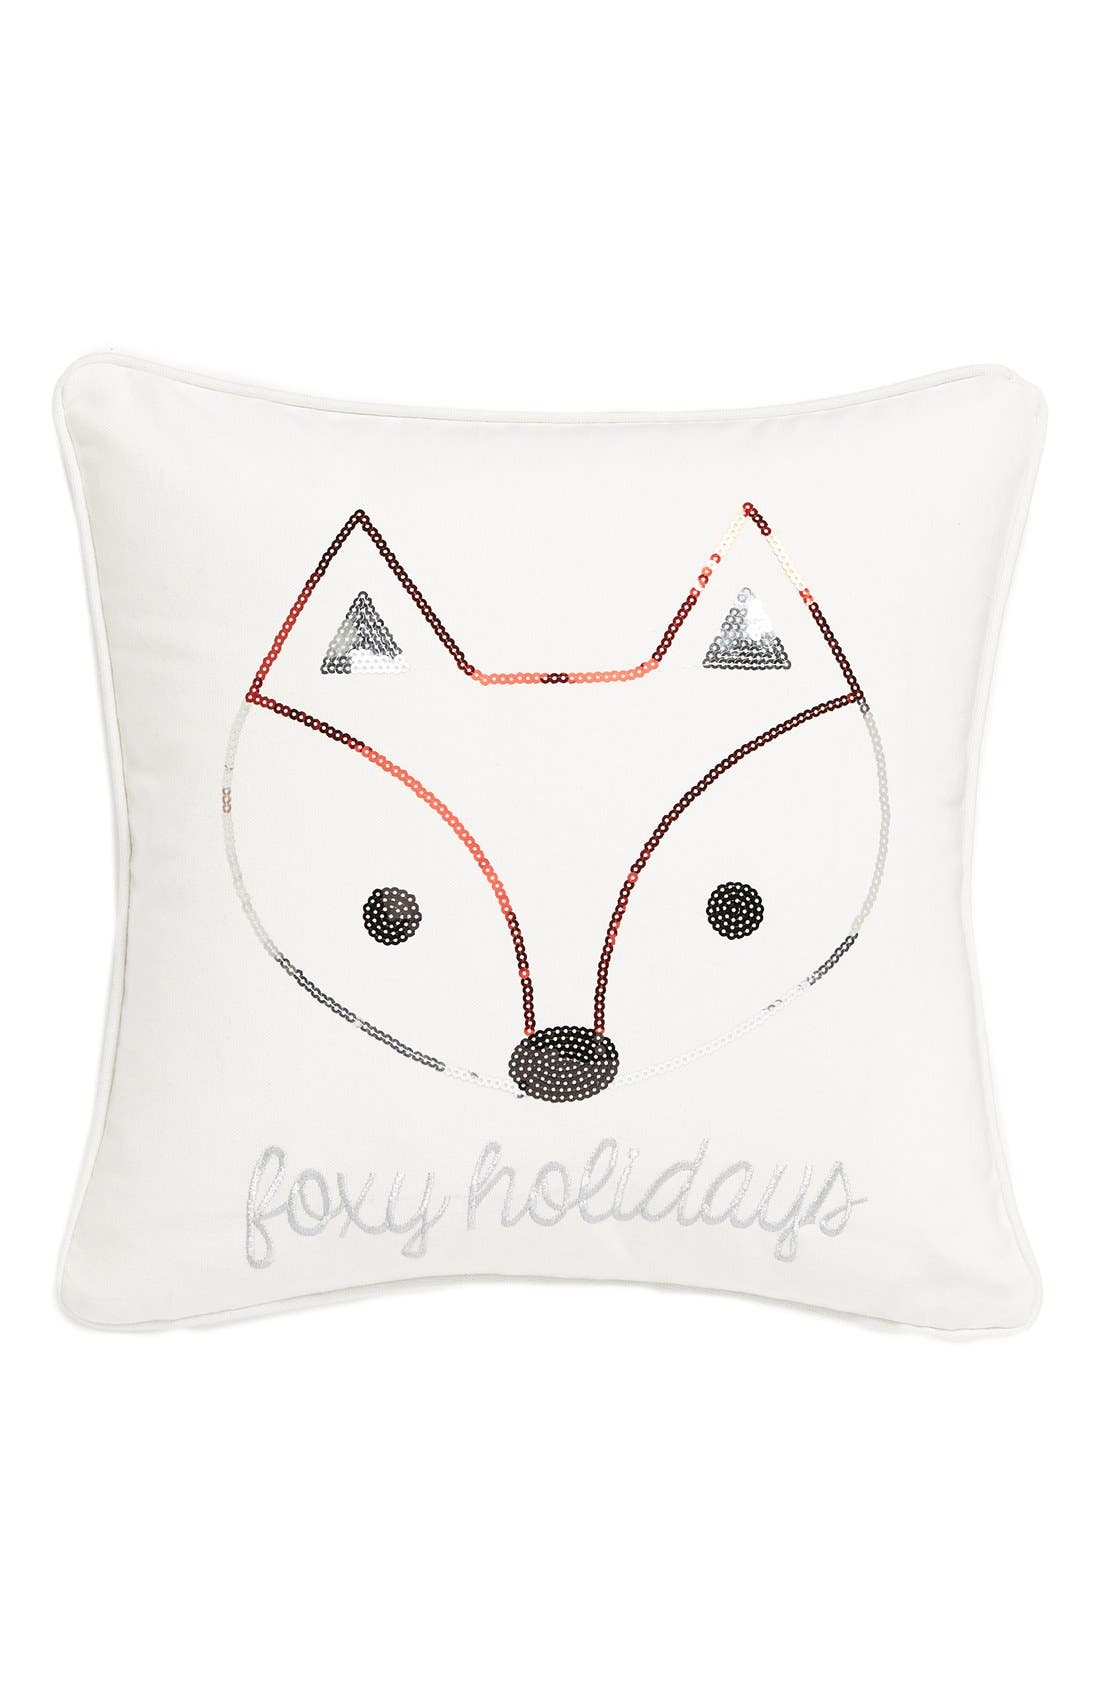 Main Image - Levtex 'Foxy Holiday' Sequin Pillow